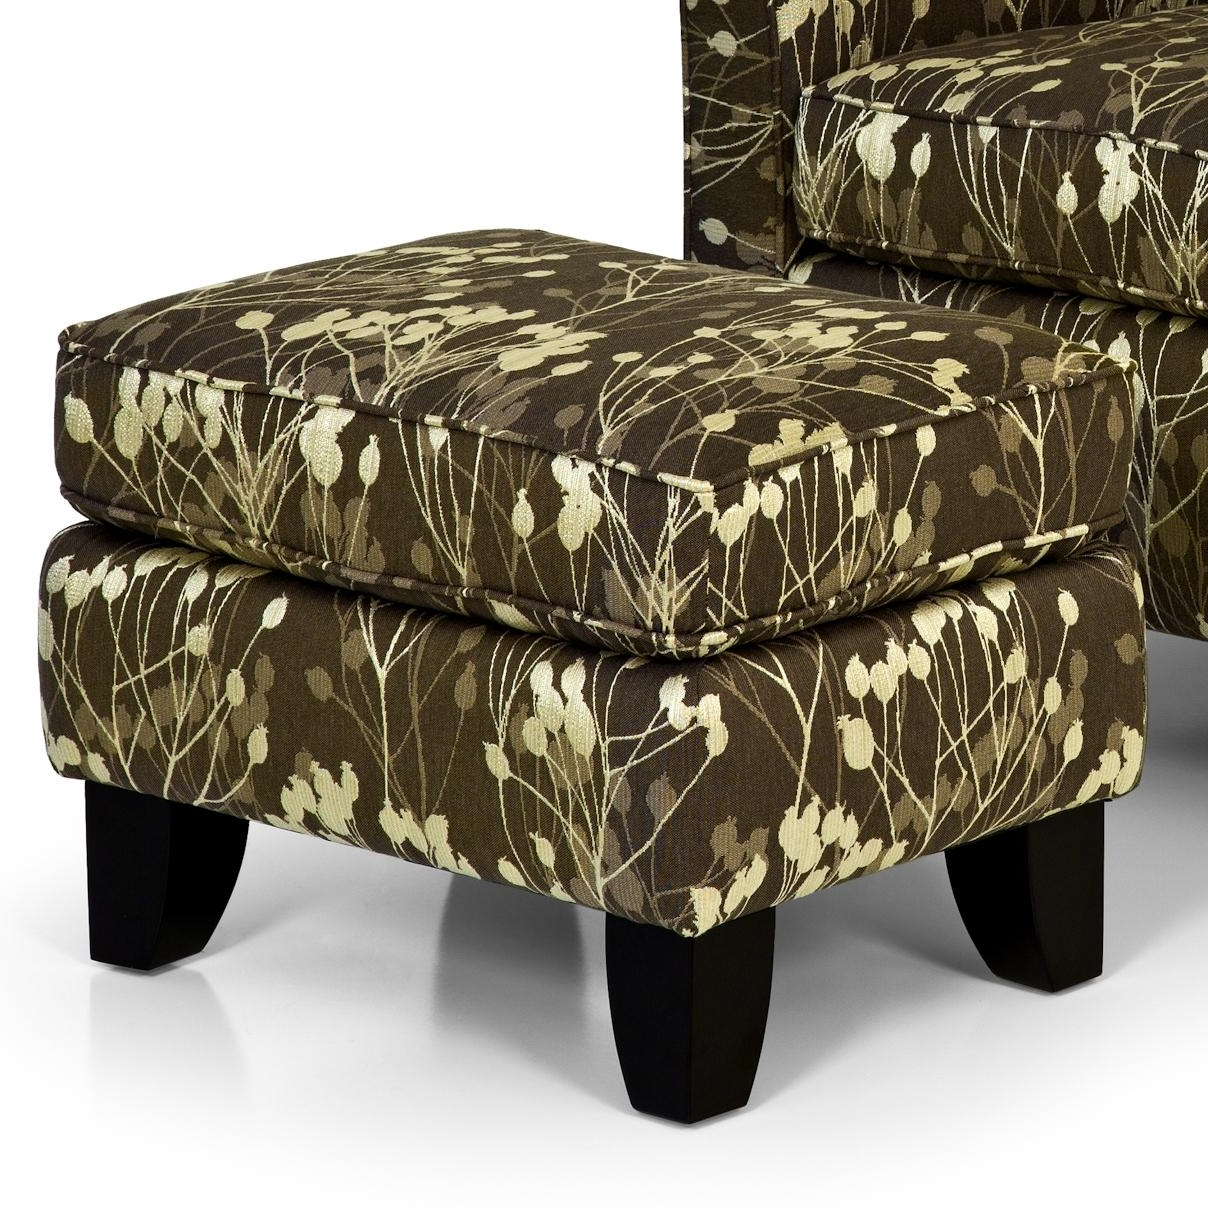 Stanton Accent Chairs And Ottomans Contemporary Accent Chair Throughout Favorite Chairs With Ottoman (View 18 of 20)